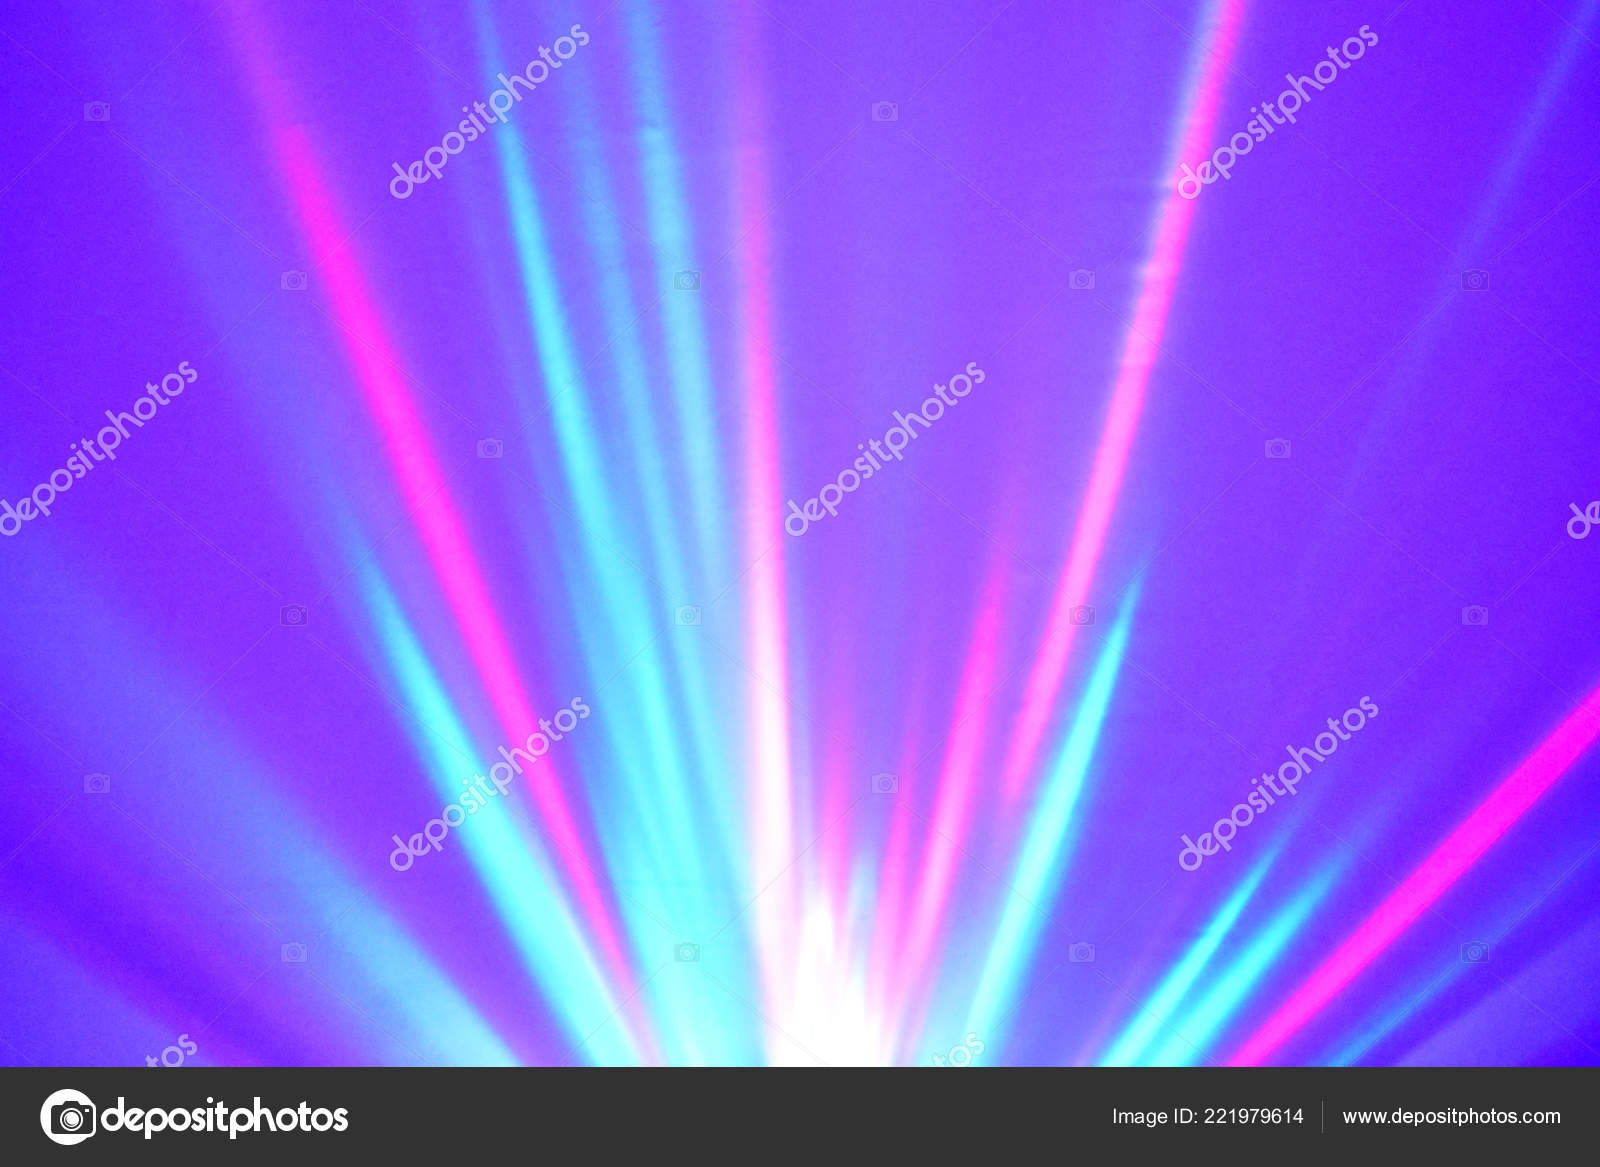 Wallpapers Cool Pink And Blue Pink Blue Light Stock Images